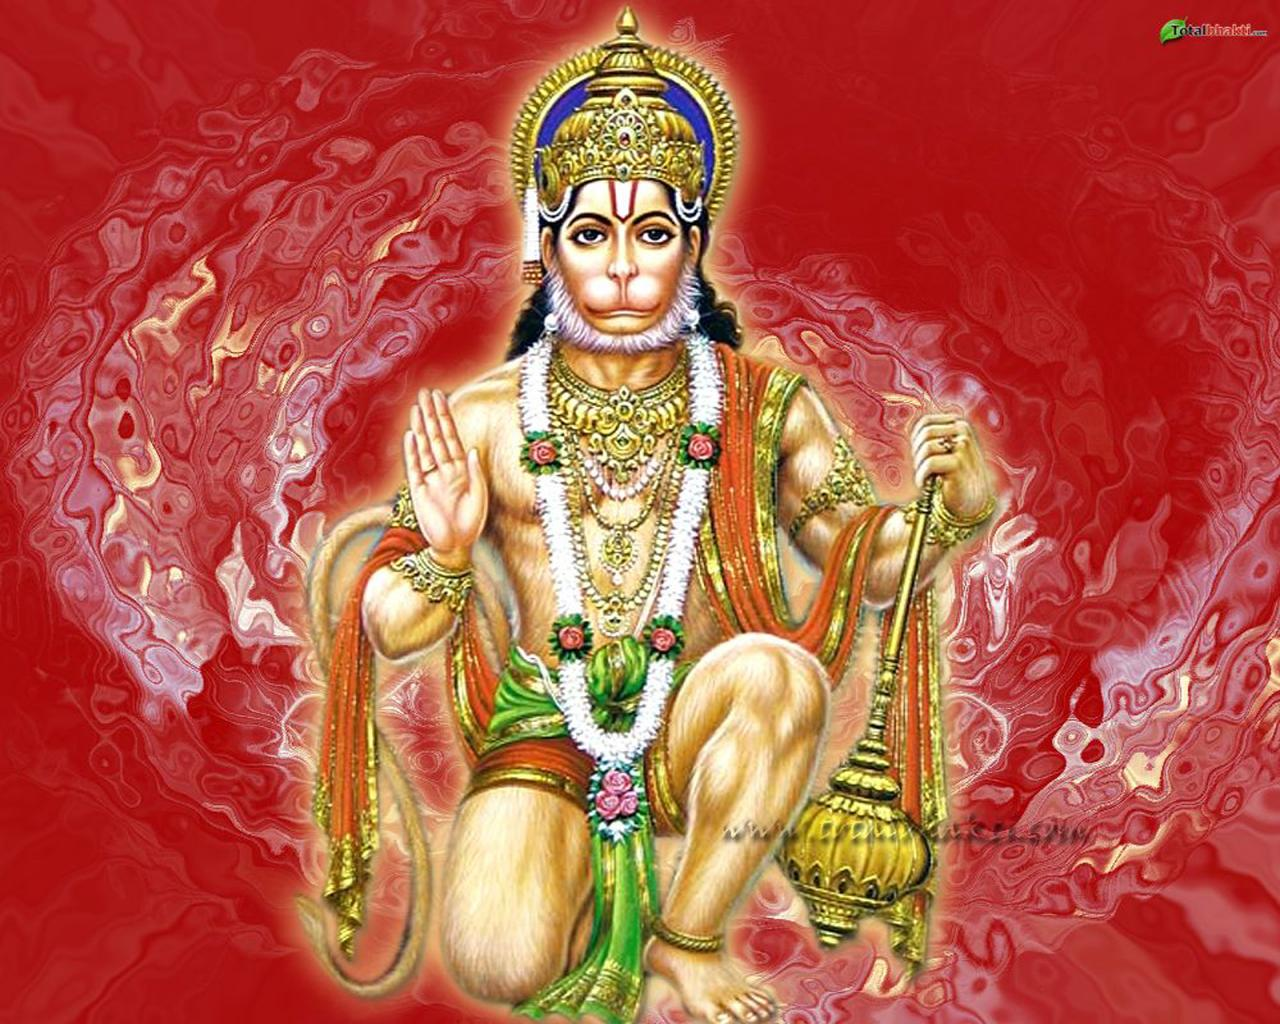 49 Hanuman Wallpaper Hd On Wallpapersafari